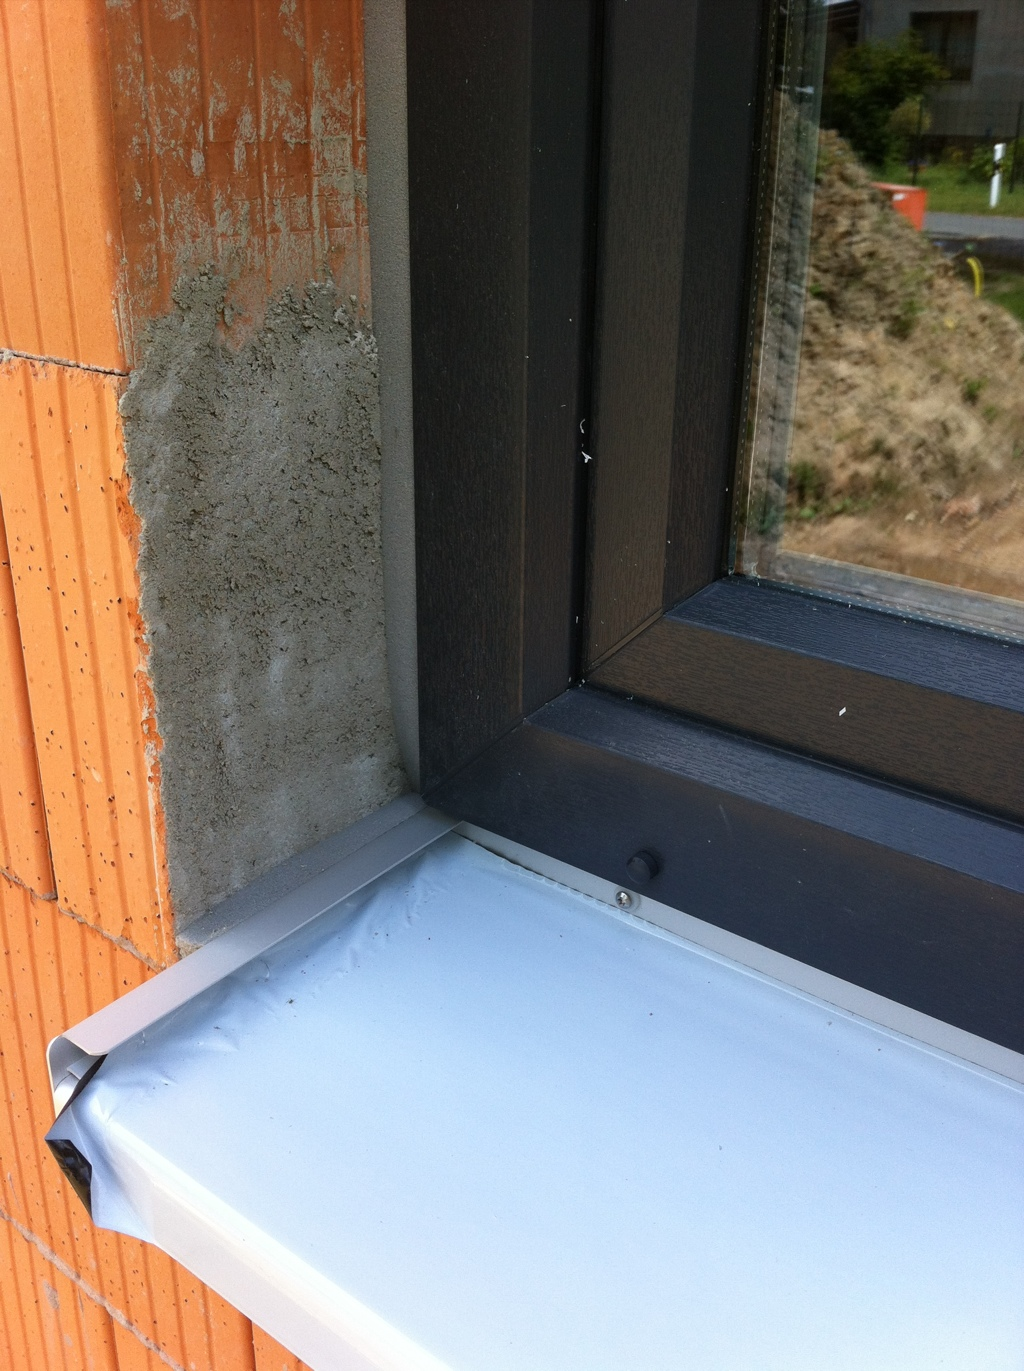 Fensterbank Anthrazit Fensterbank Alu Wei Trendy Fensterbank Aluminium Endstcke With